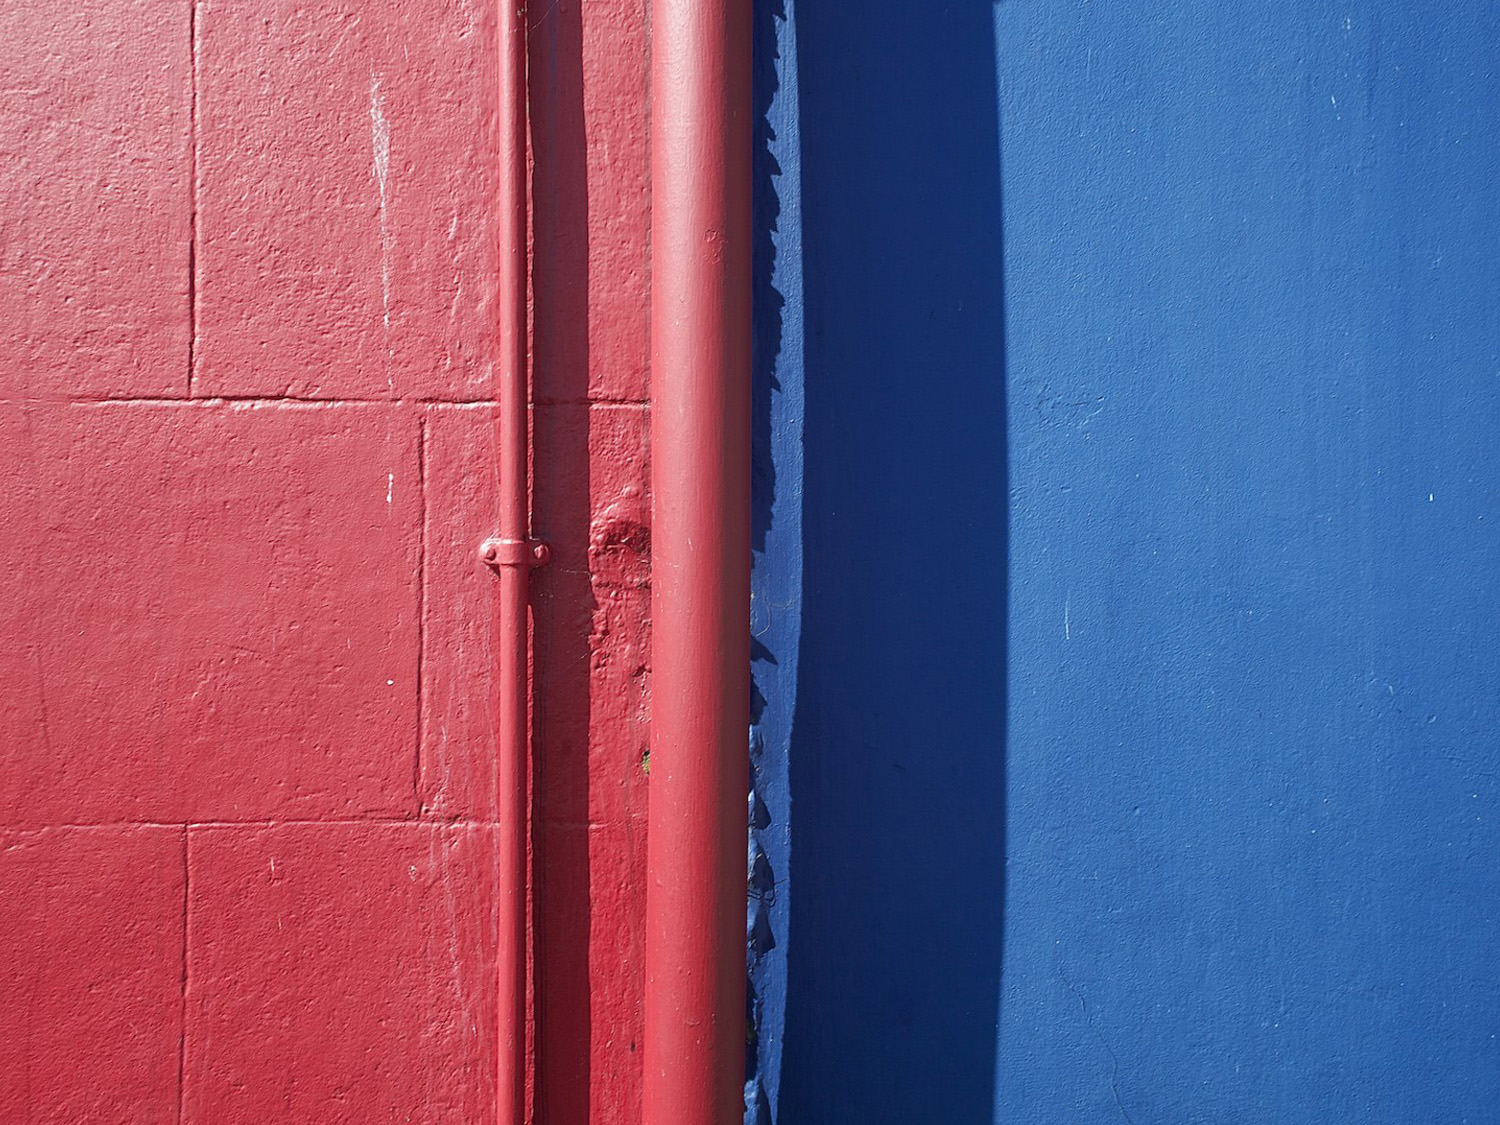 Christopher-Swan-Mull-Tobermory-Colours-abstract 12014-04-18 copy.jpg